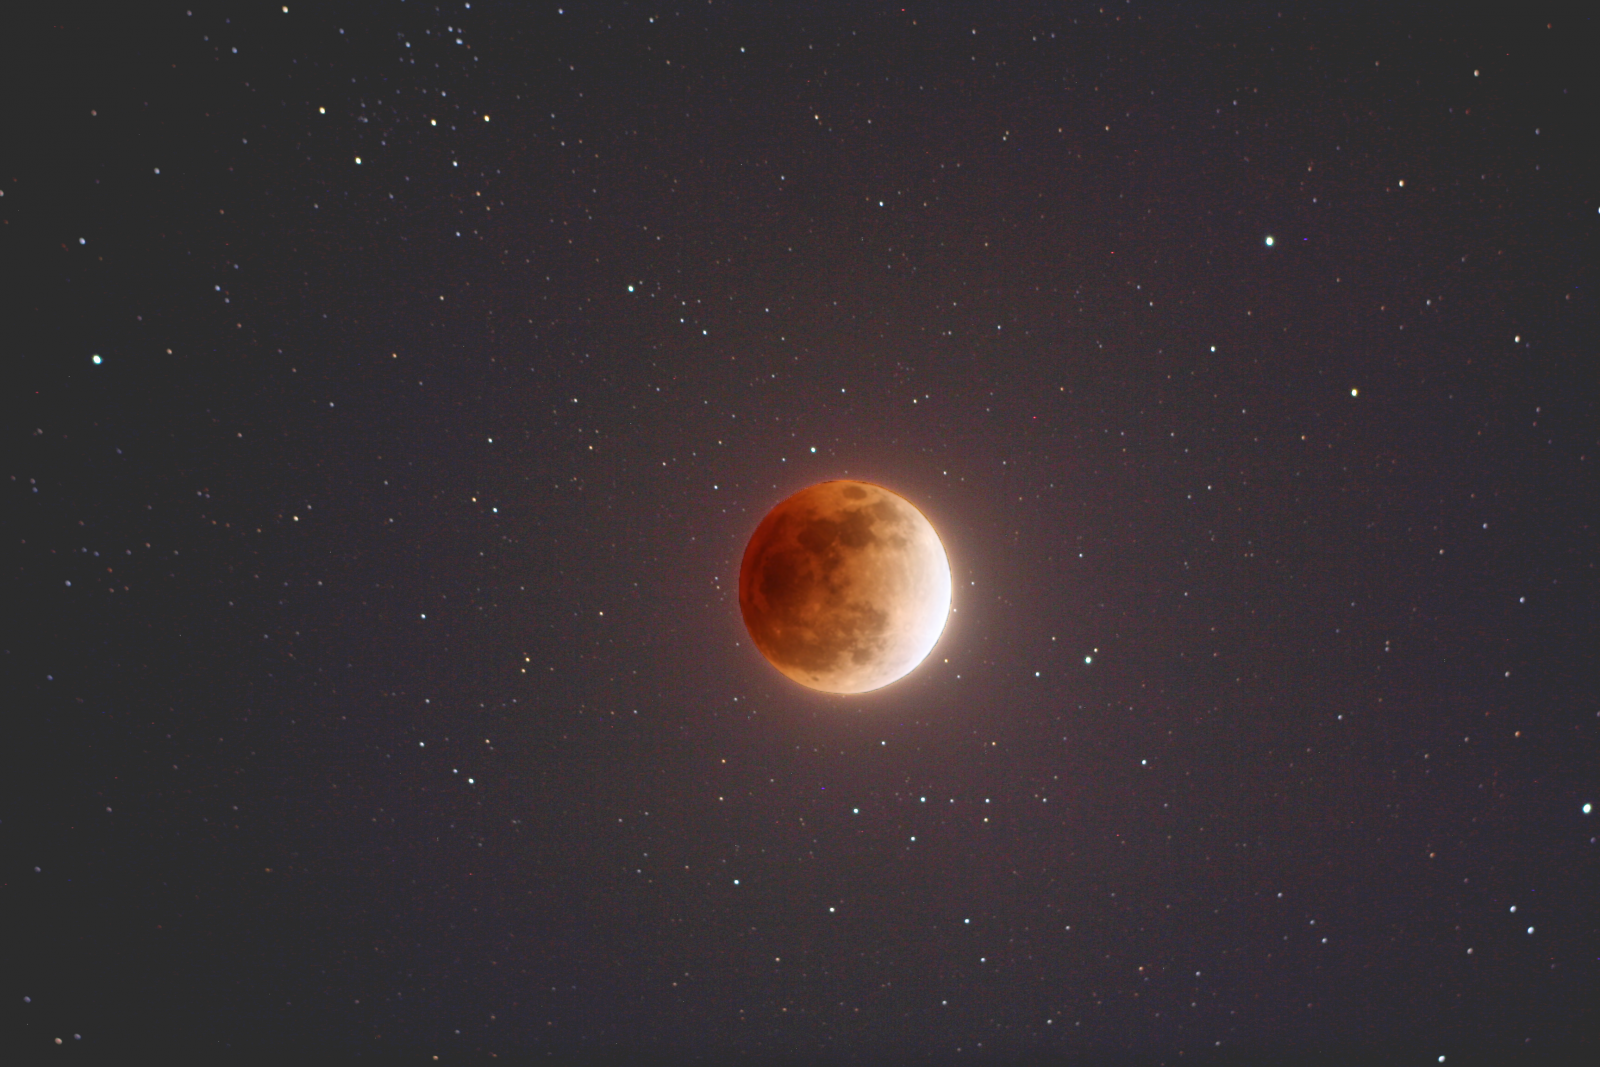 EcoworldReactor: Blood Moon 2014 - Lunar Eclipse Online